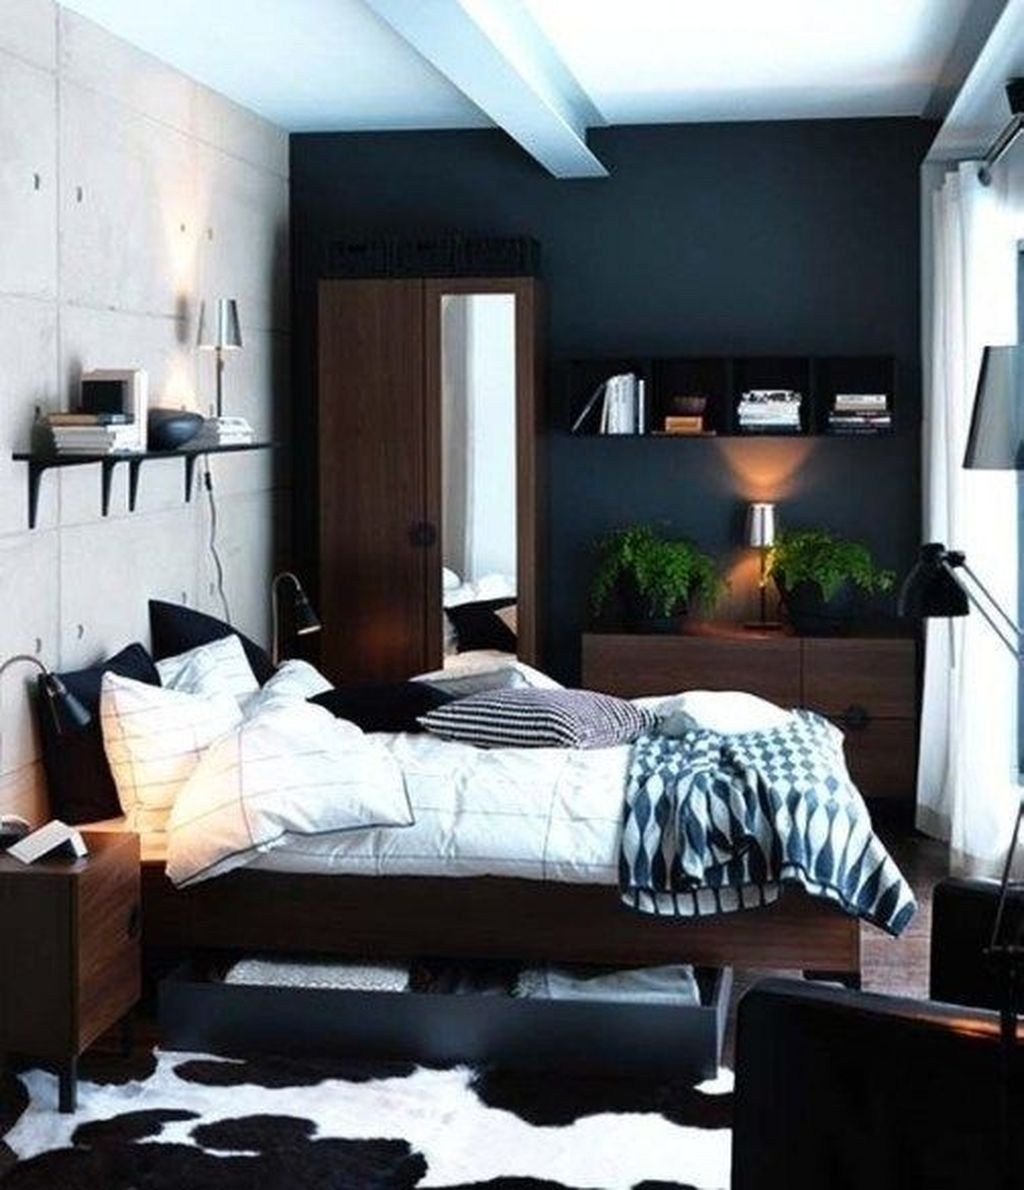 45 Cool Small Bedroom Ideas For Couple Home Design Small Bedroom Interior Ikea Bedroom Design Small Bedroom Decor